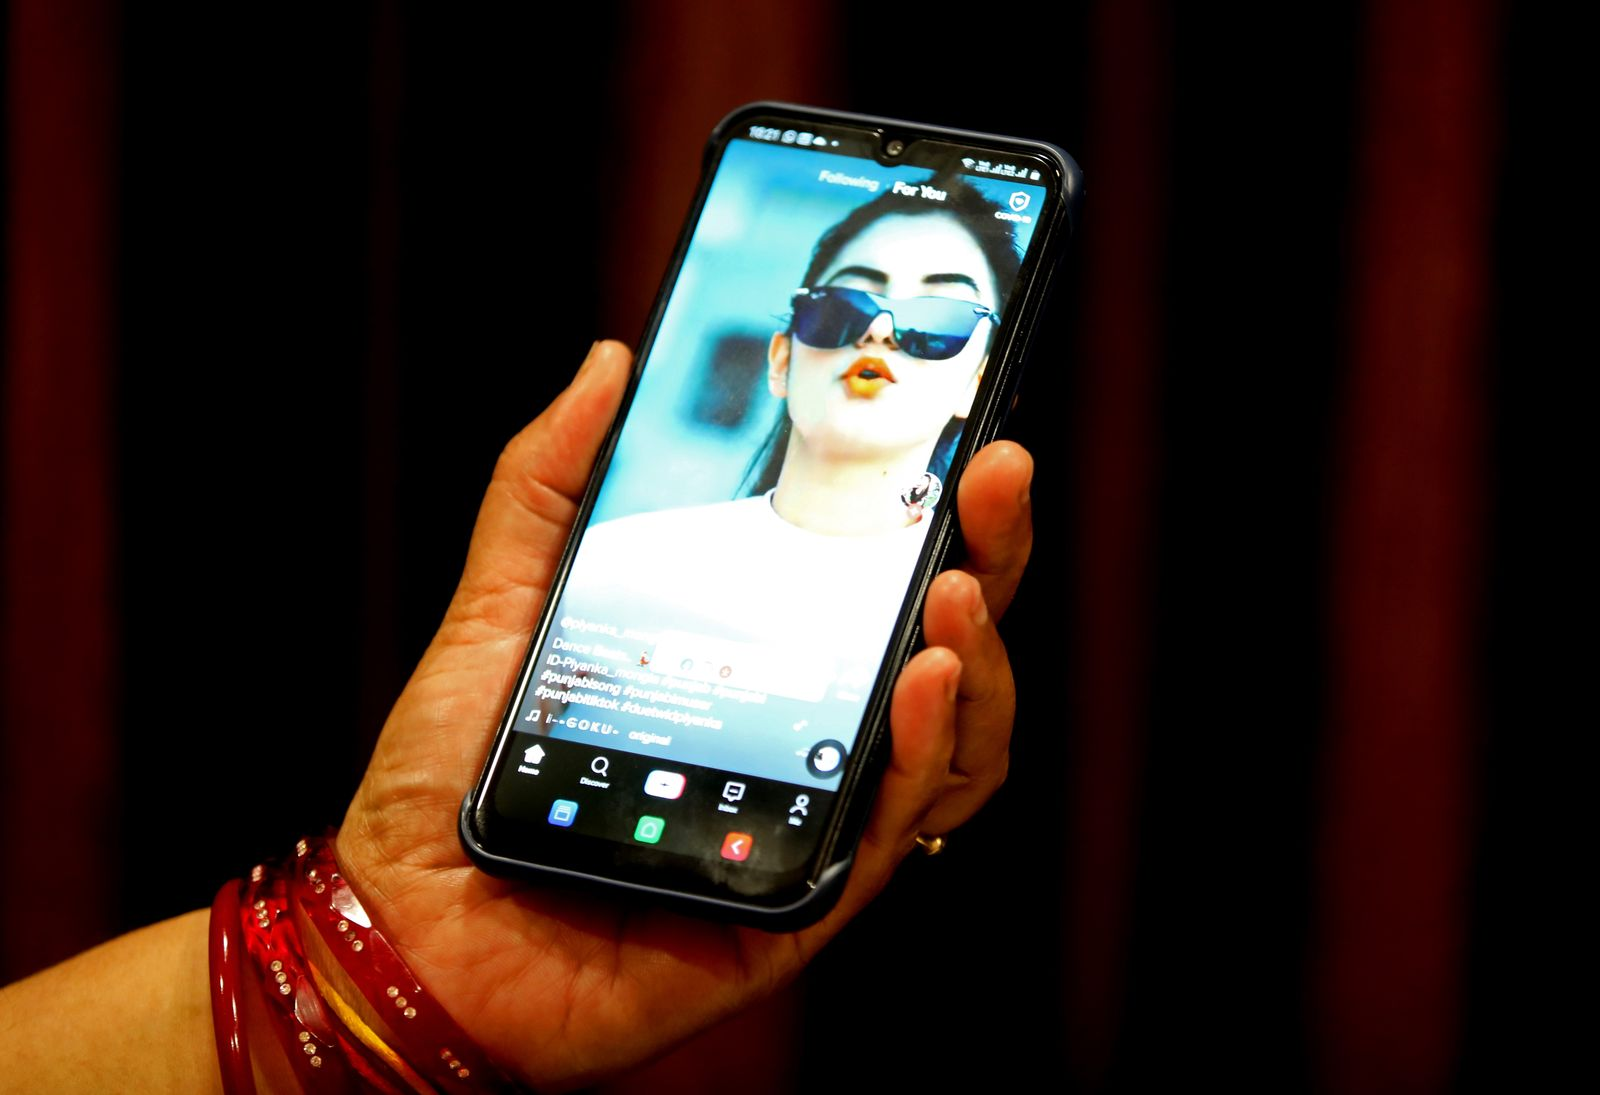 Indian goverment bans 59 Chinese smartphone apps amid territorial dispute with Beijing, Bhopal, India - 29 Jun 2020